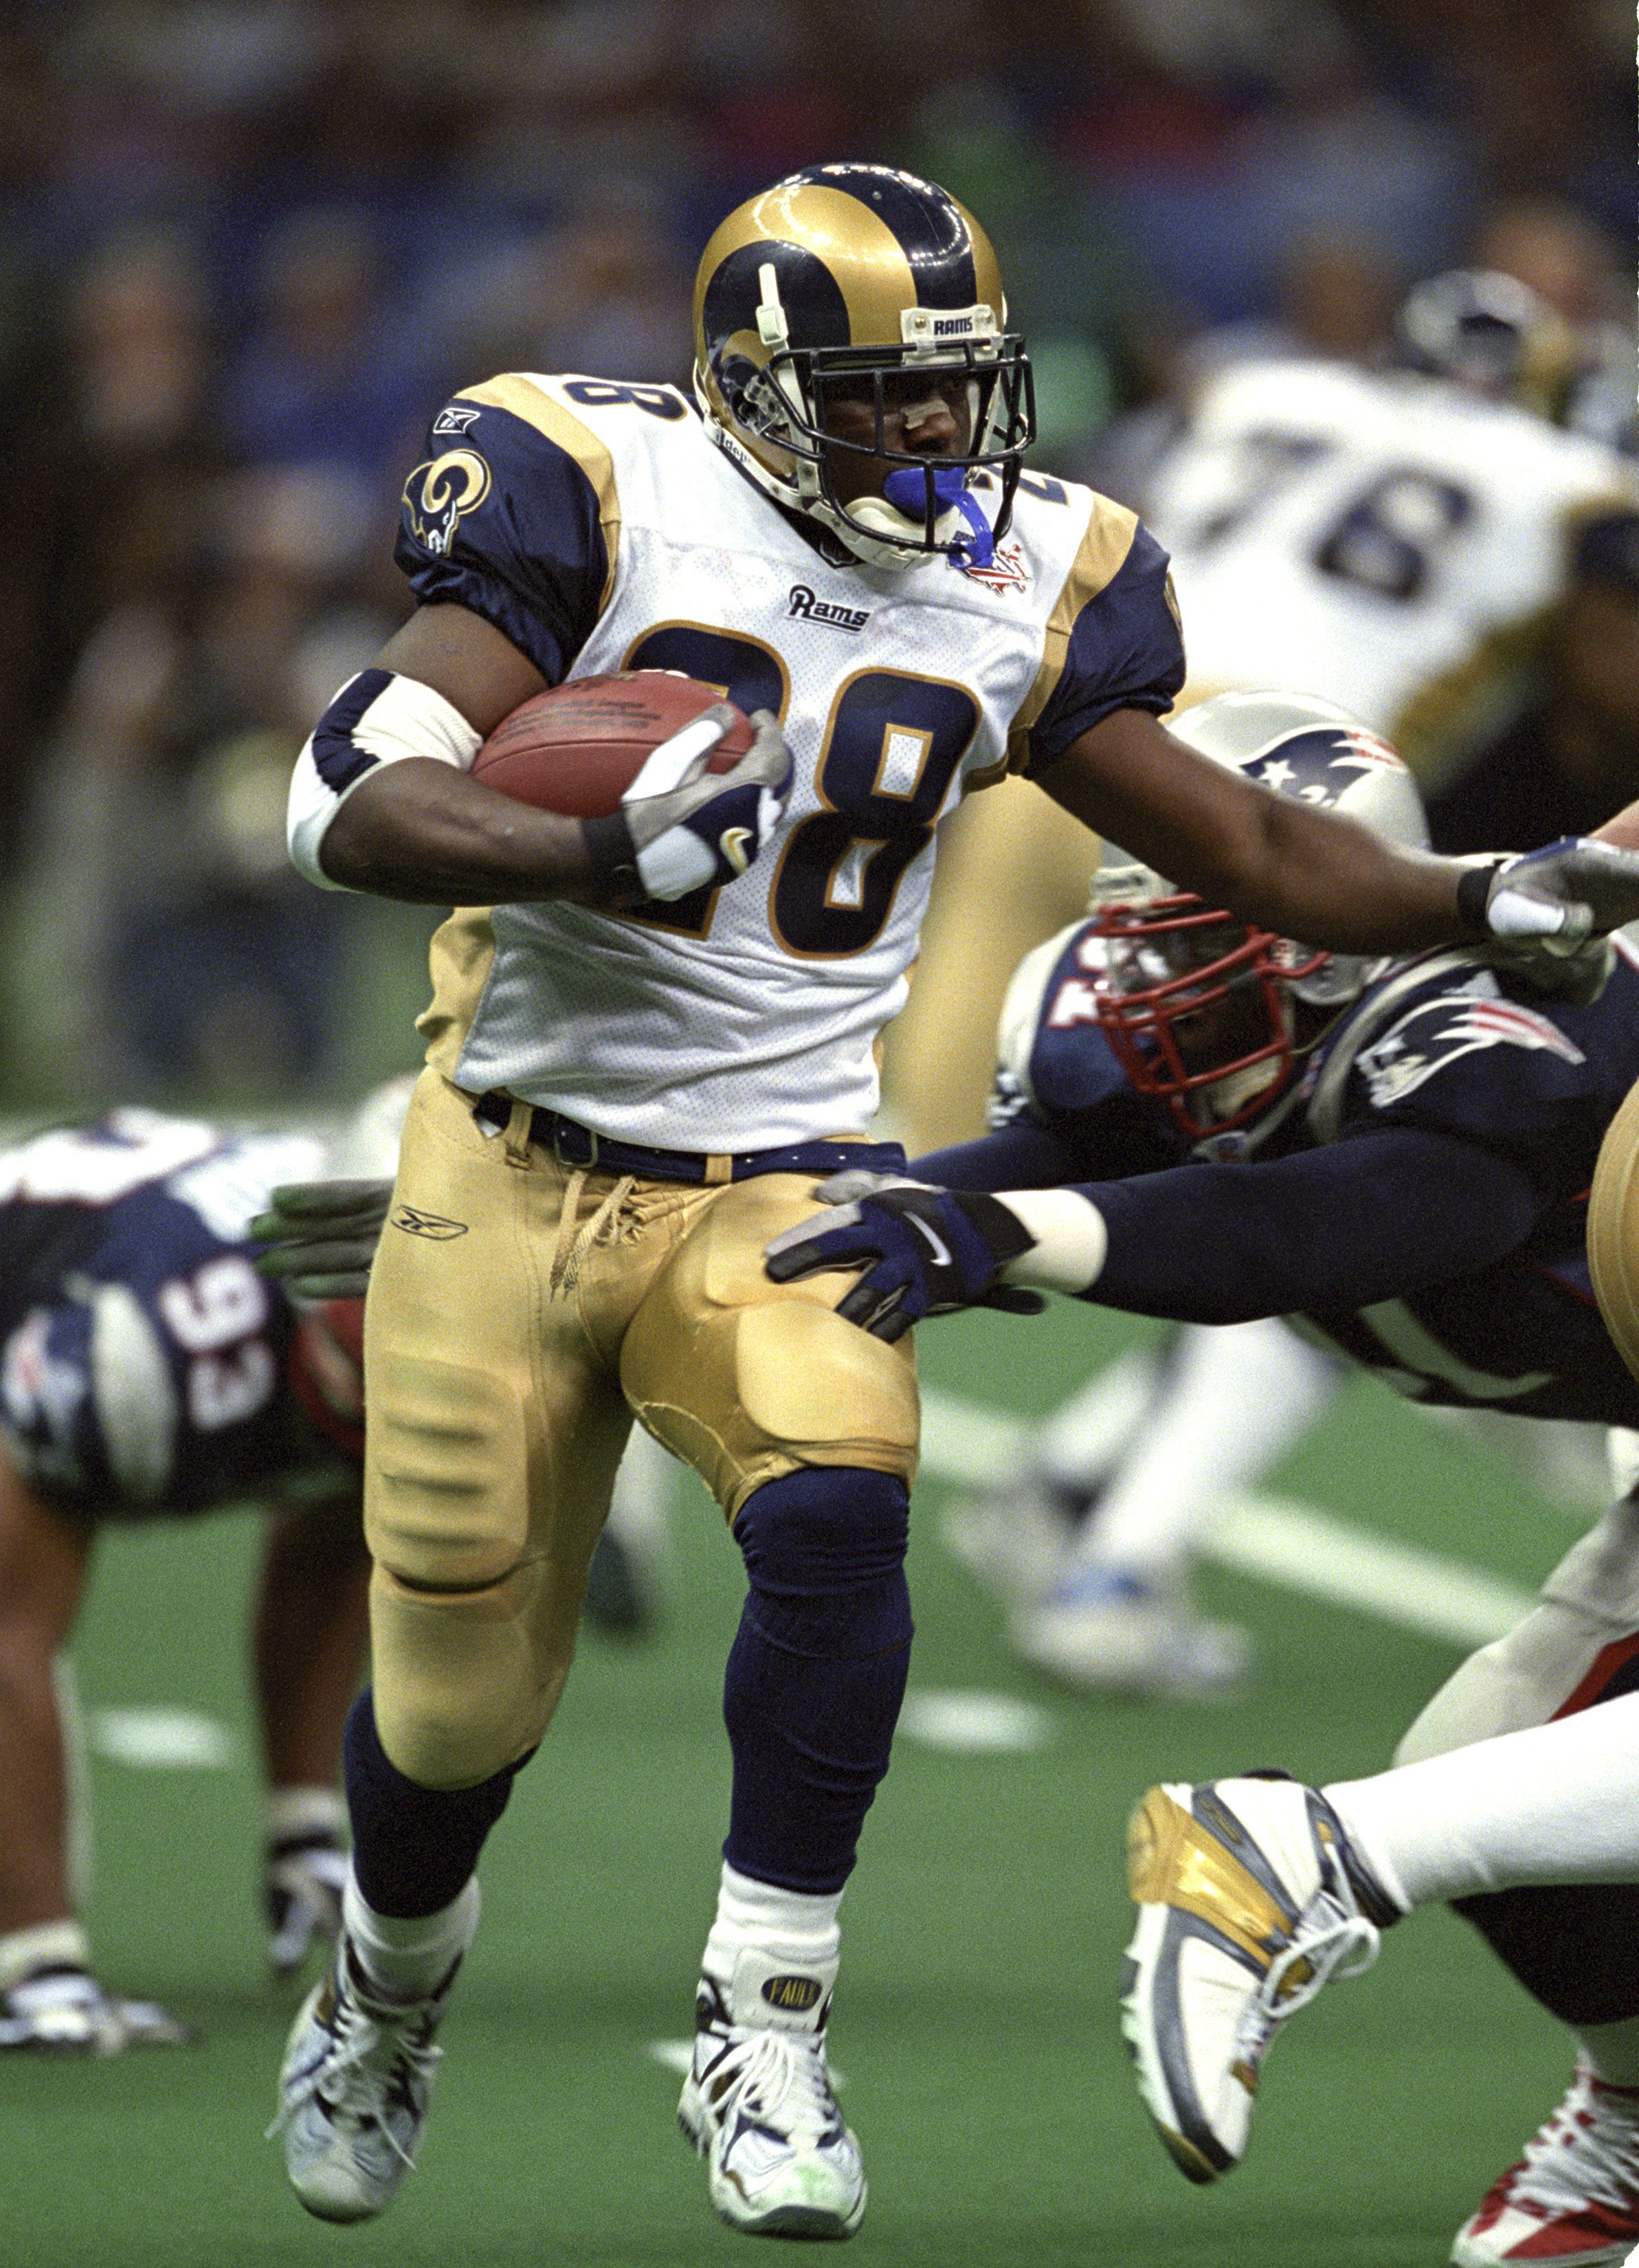 Marshall Faulk Rams football, American football, St